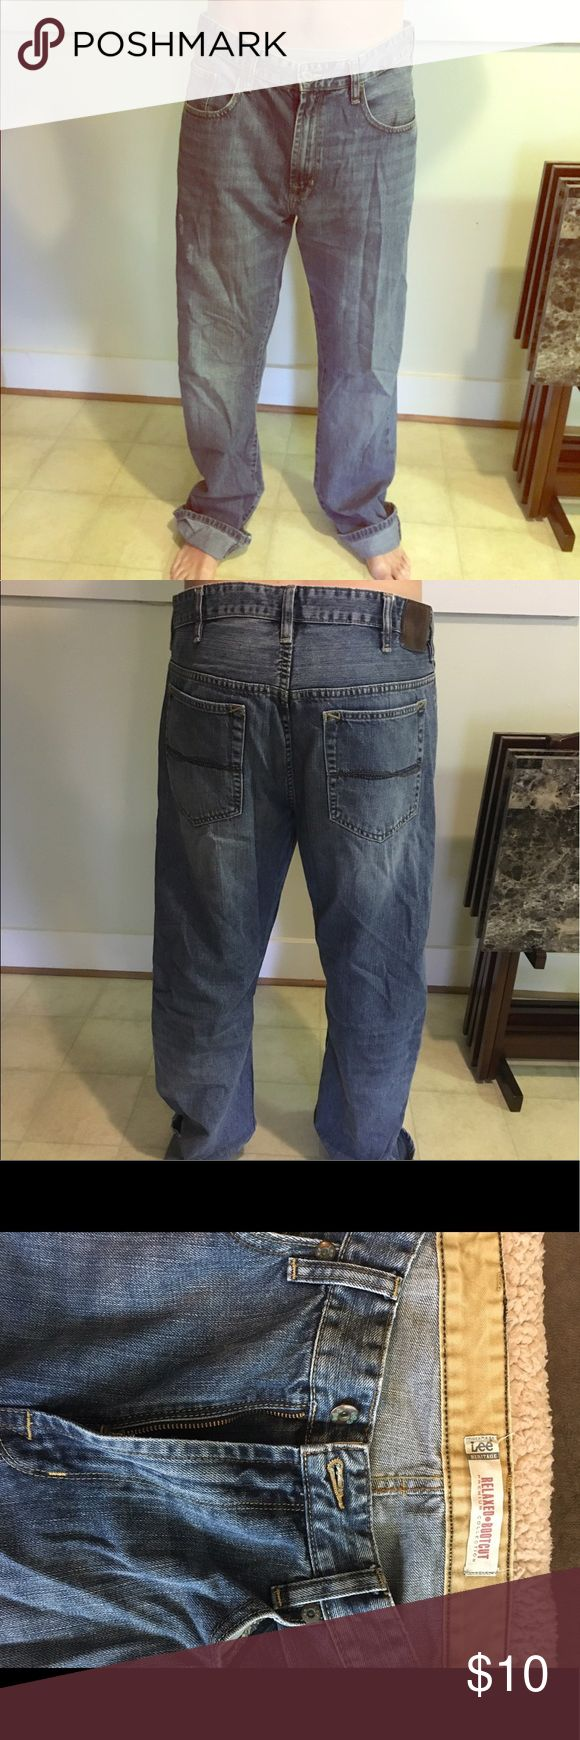 Men's Lee Relaxed and Bootcut Jeans Only worn three/four times. Nothing wrong with them. Very comfortable. Great working jeans or for men who wear boots a lot! Lee Jeans Bootcut